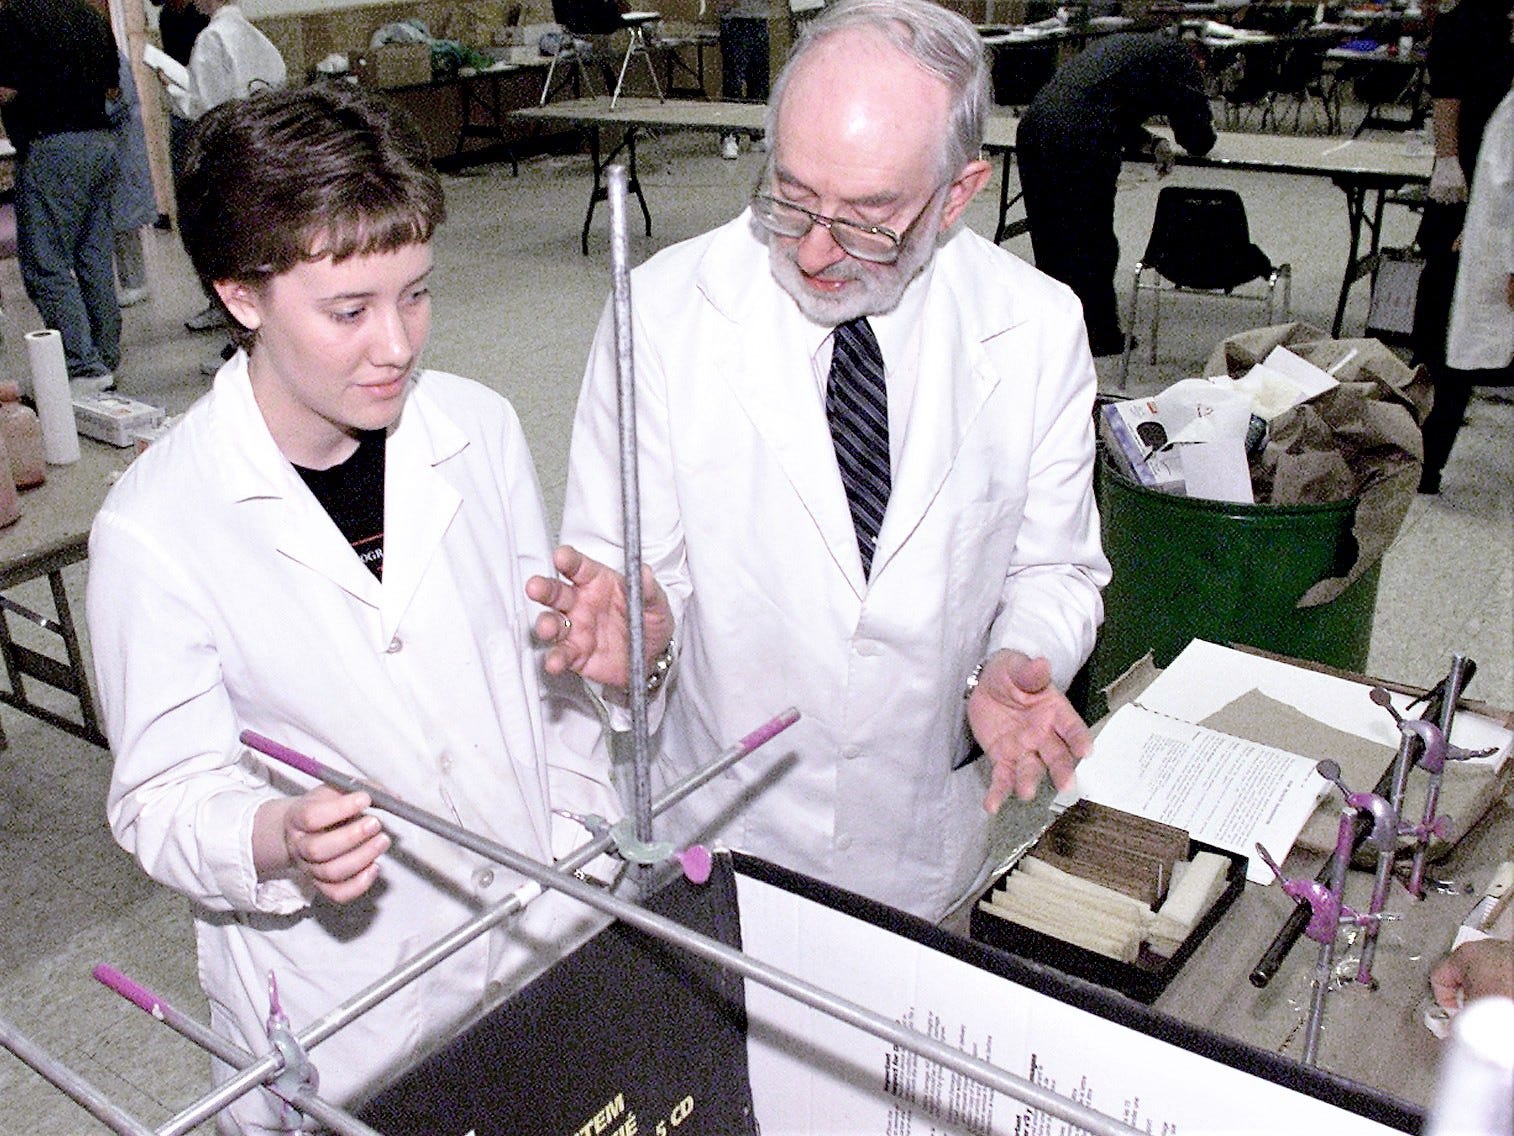 Herbert MacDonell tells Stacy Toup how an experiment will be conducted during a bloodstain seminar in Corning. In the experiment, a bullet is fired through a blood-soaked sponge so that the pattern of blood sprayed during impact can be observed on a white piece of paper.